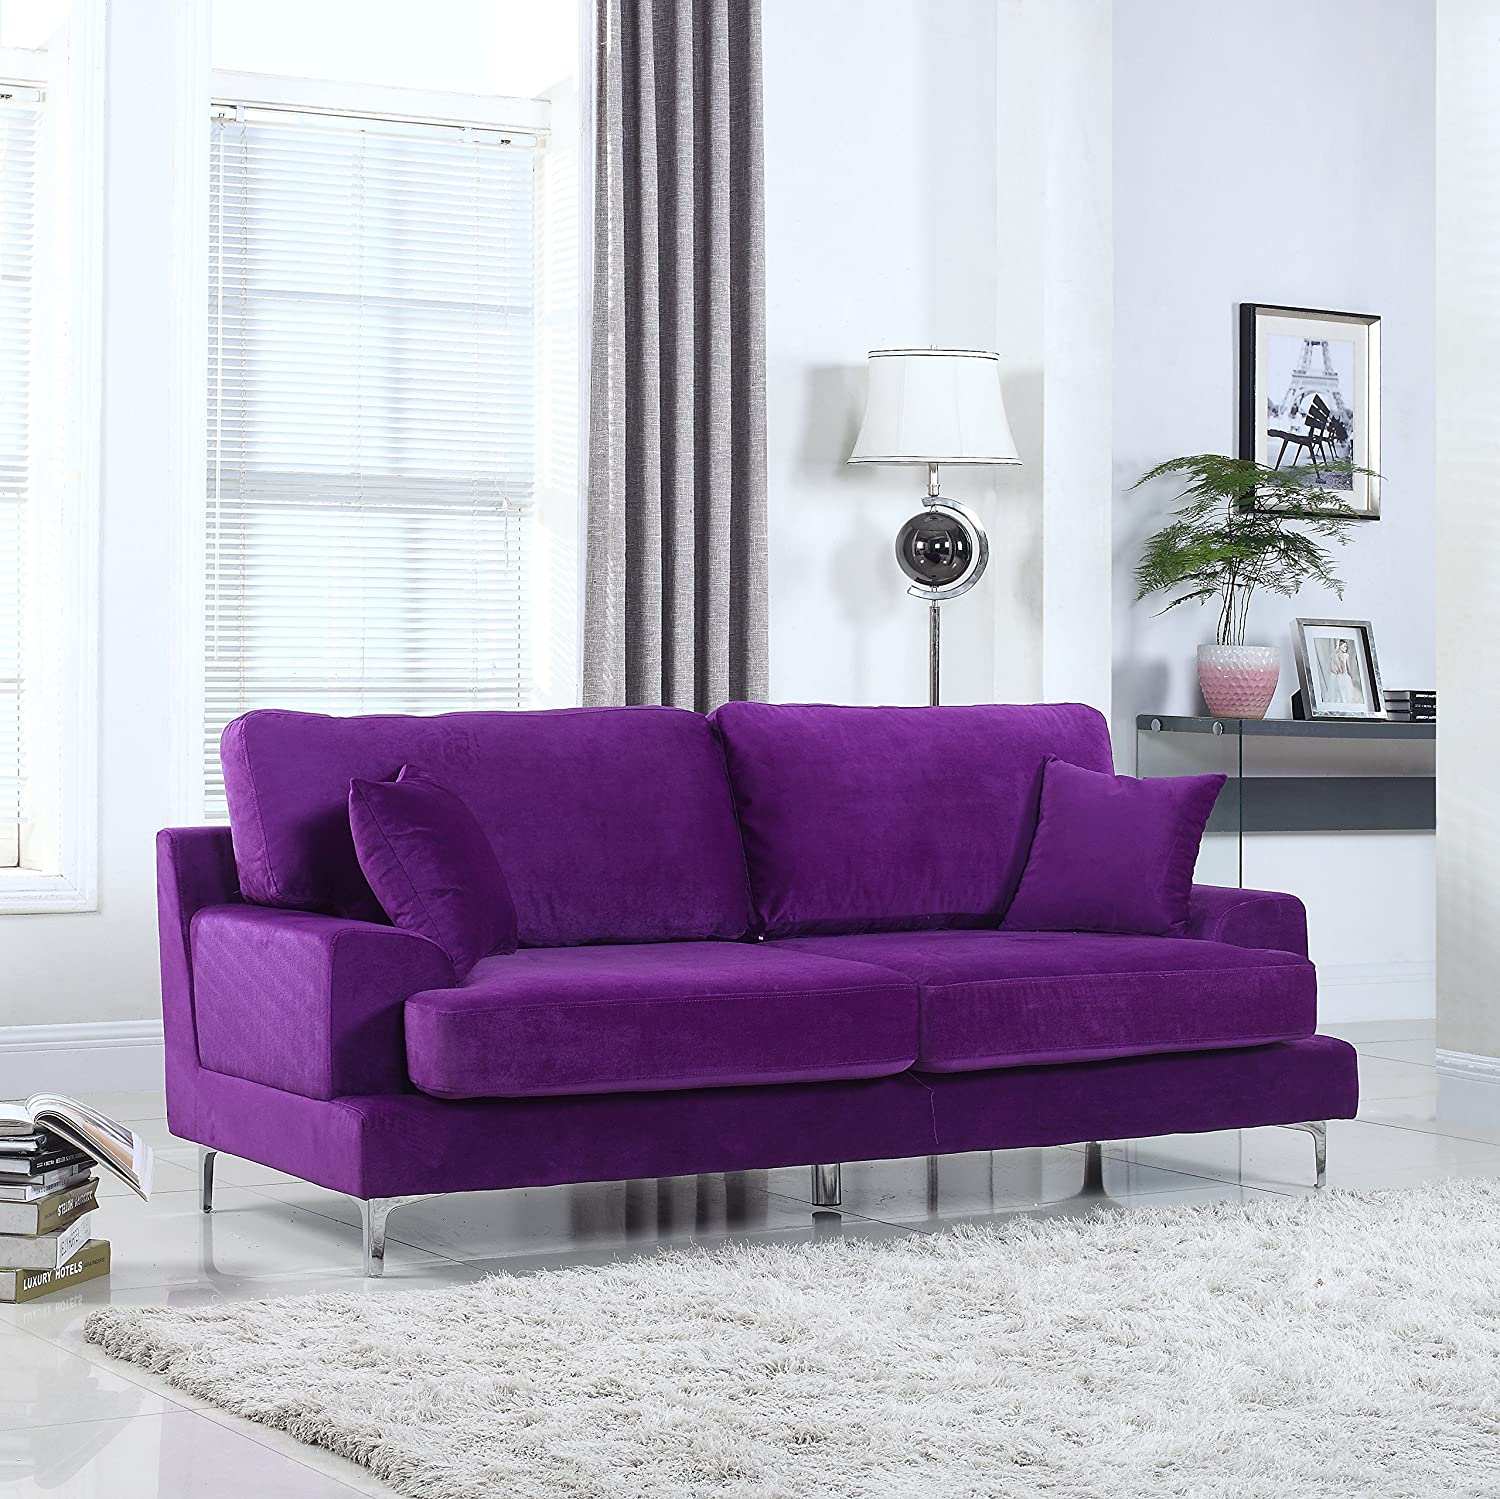 living set dollars in furniture purple design ideas fresh of room modern sale sets elegant trendy under cheap image